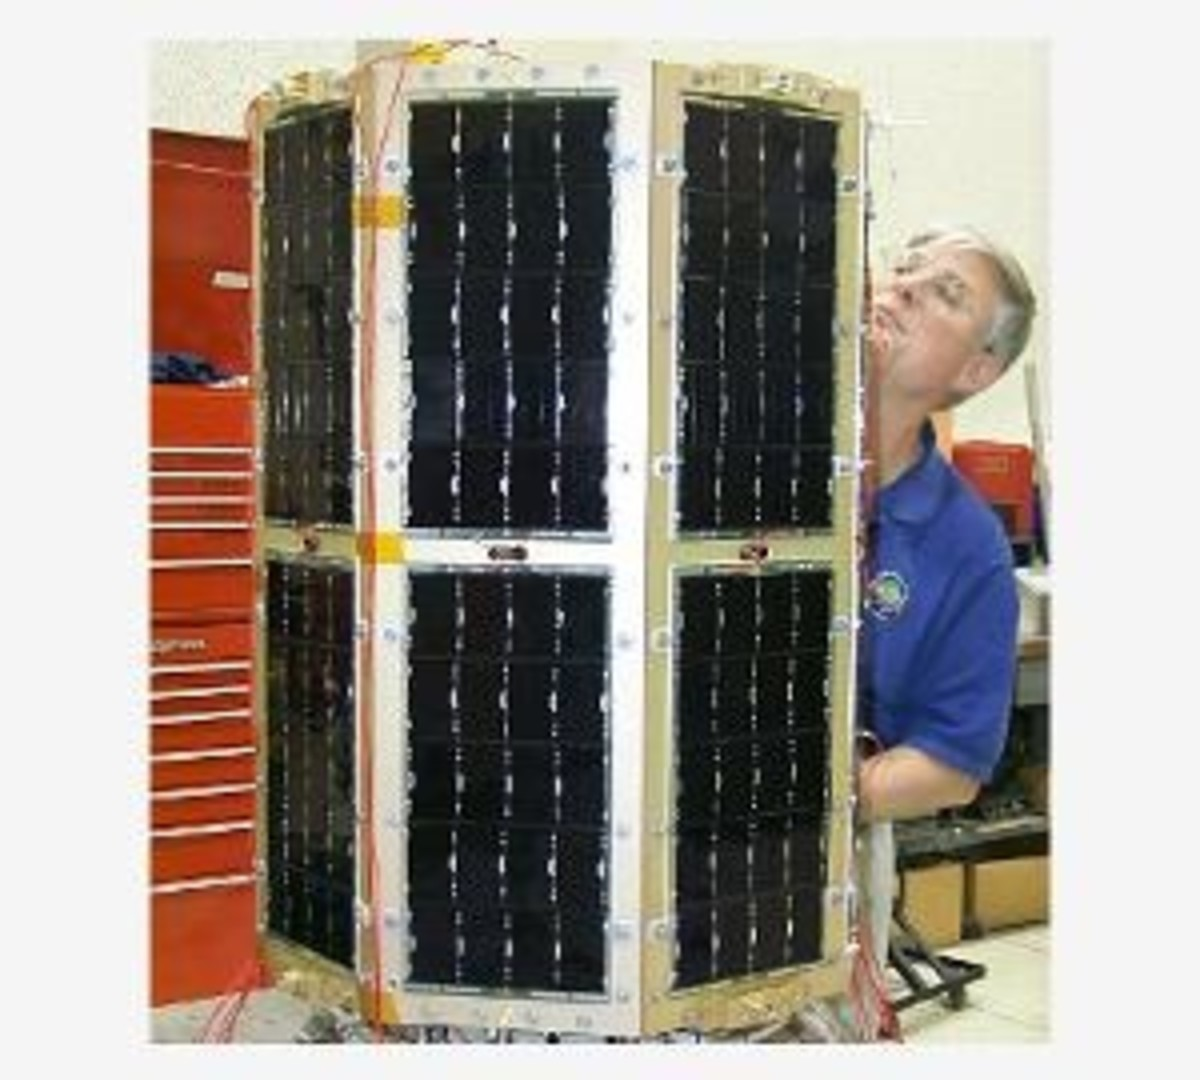 High Efficiency Gallium Arsenide Solar Cells (they cover the sides of US Naval Academy satellite MIDSTAR-1)